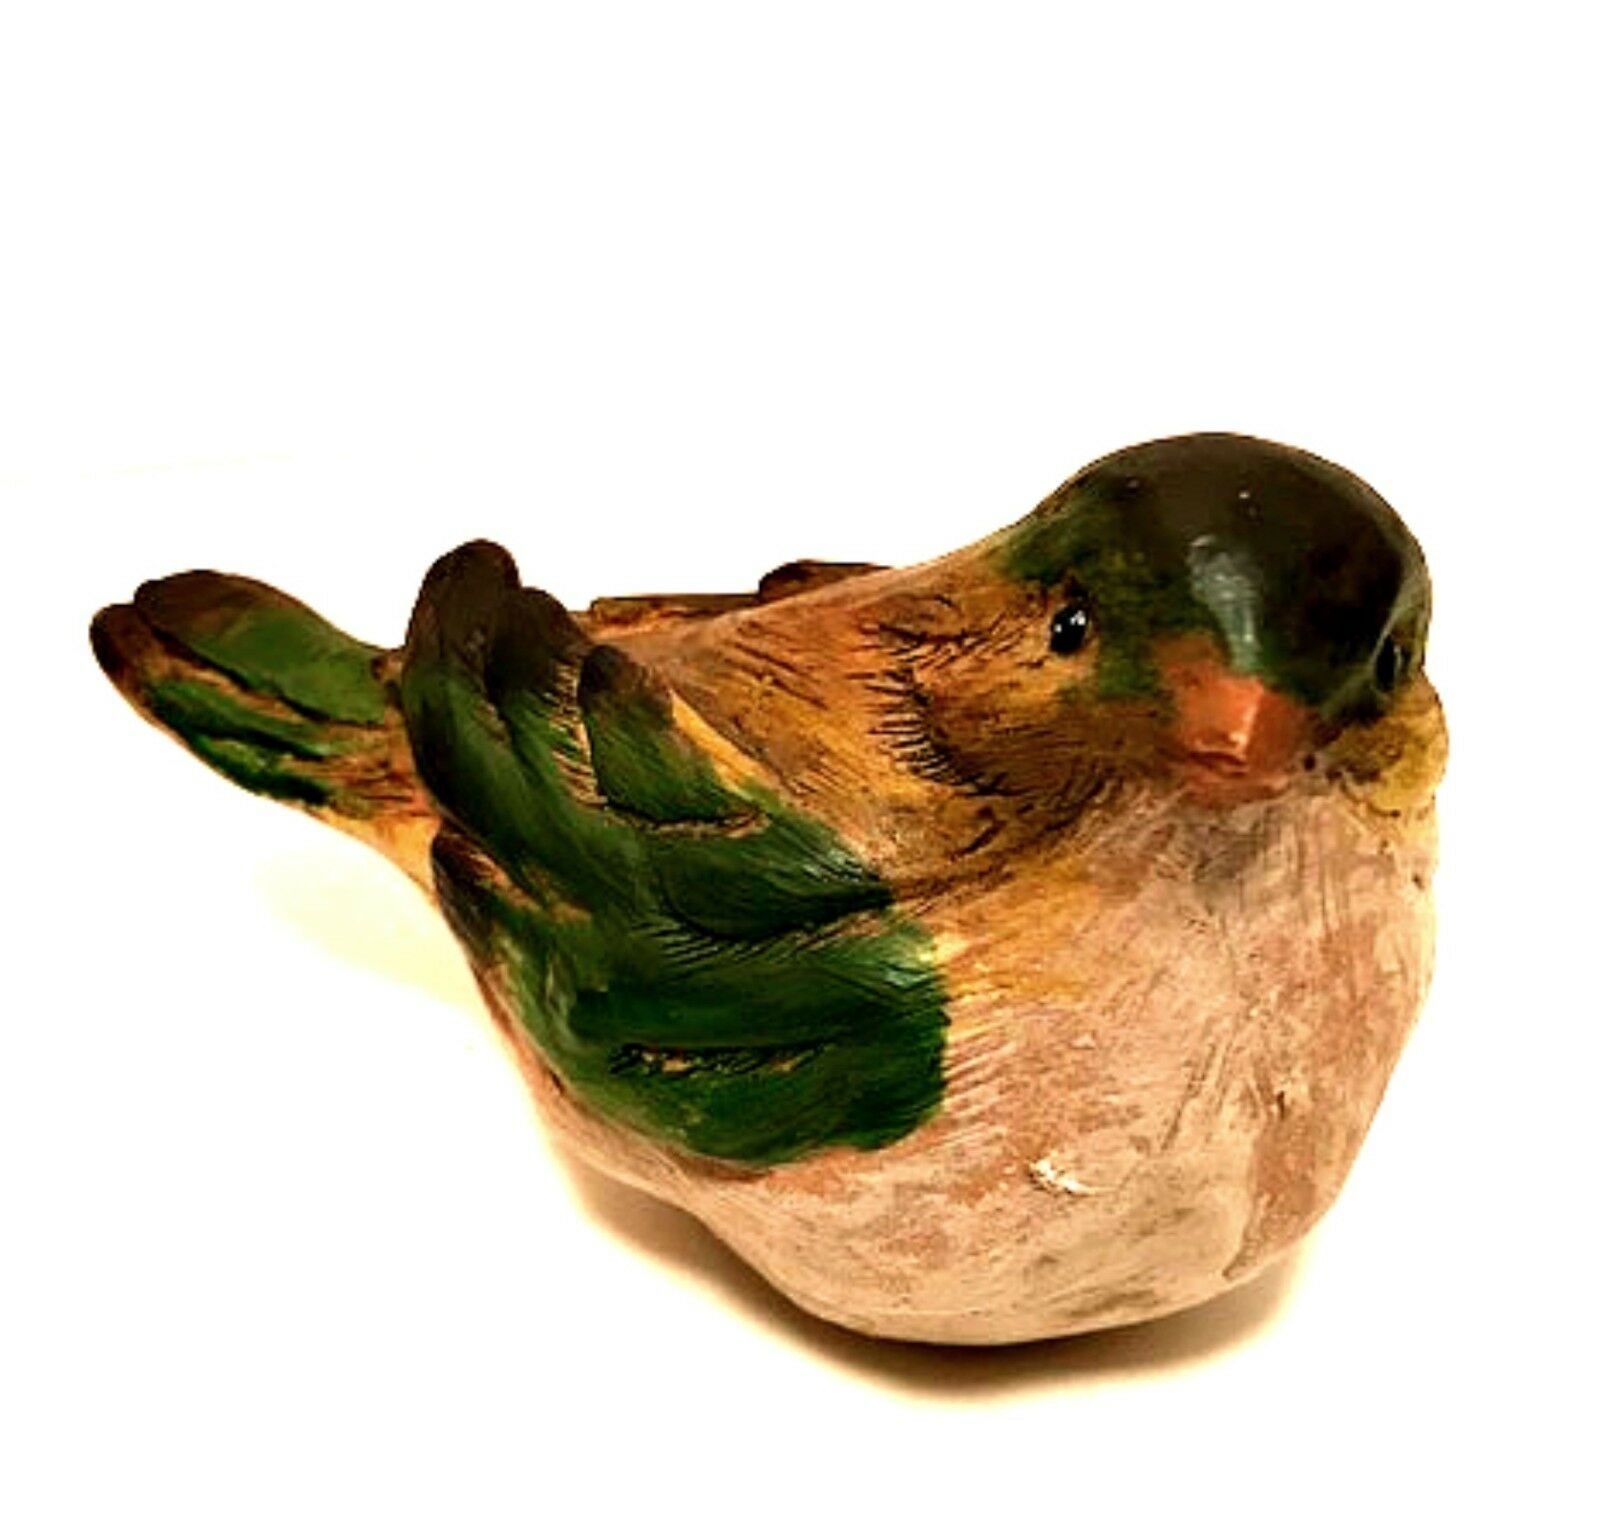 Primary image for Bird Figurine Wood Look Resin Brown Green Detailed 5 inches Long